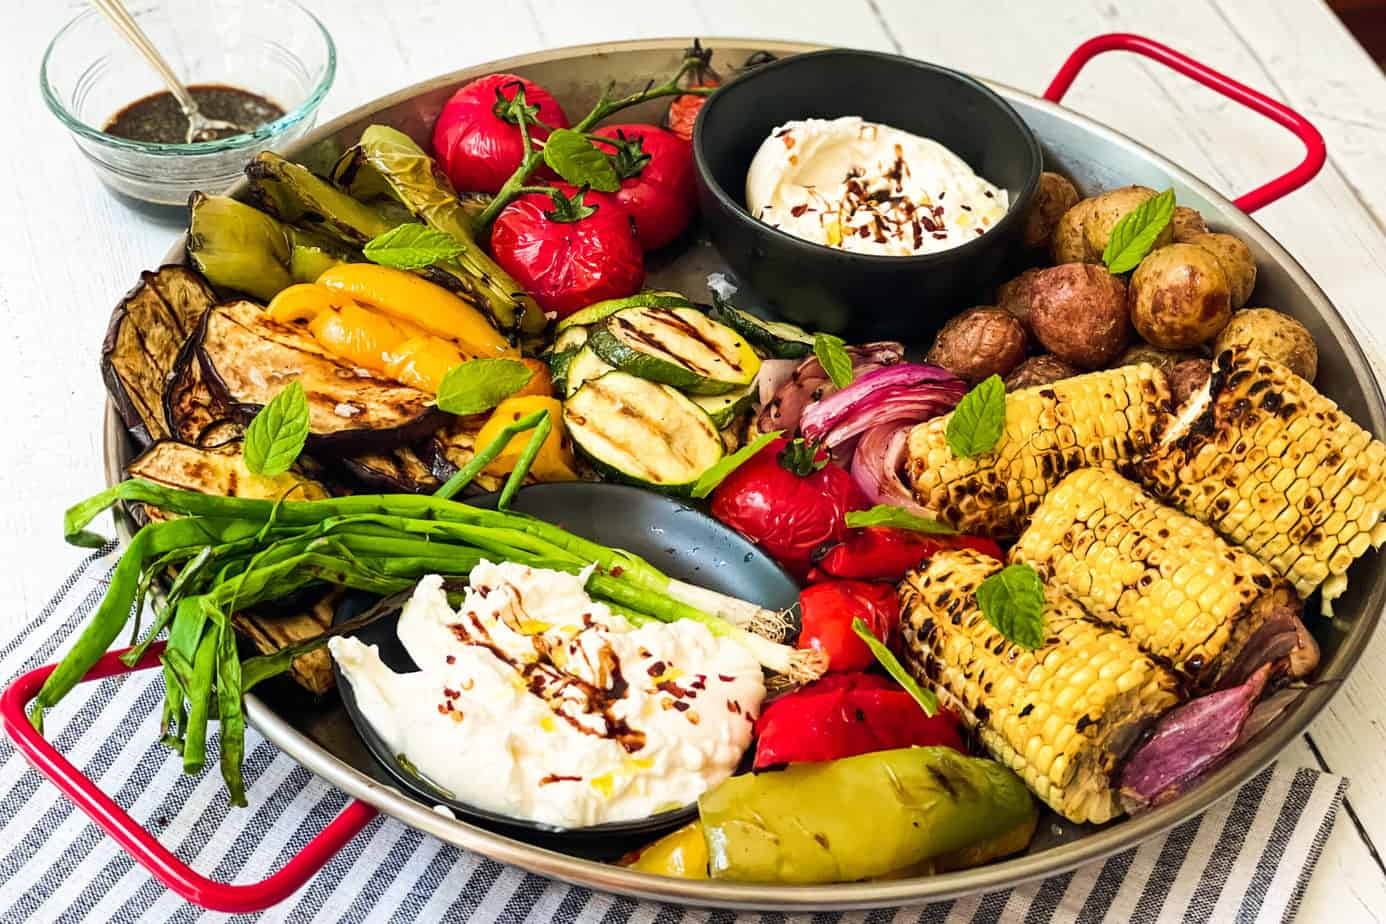 Grilled Vegetables with Burrata Cheese on a serving platter.